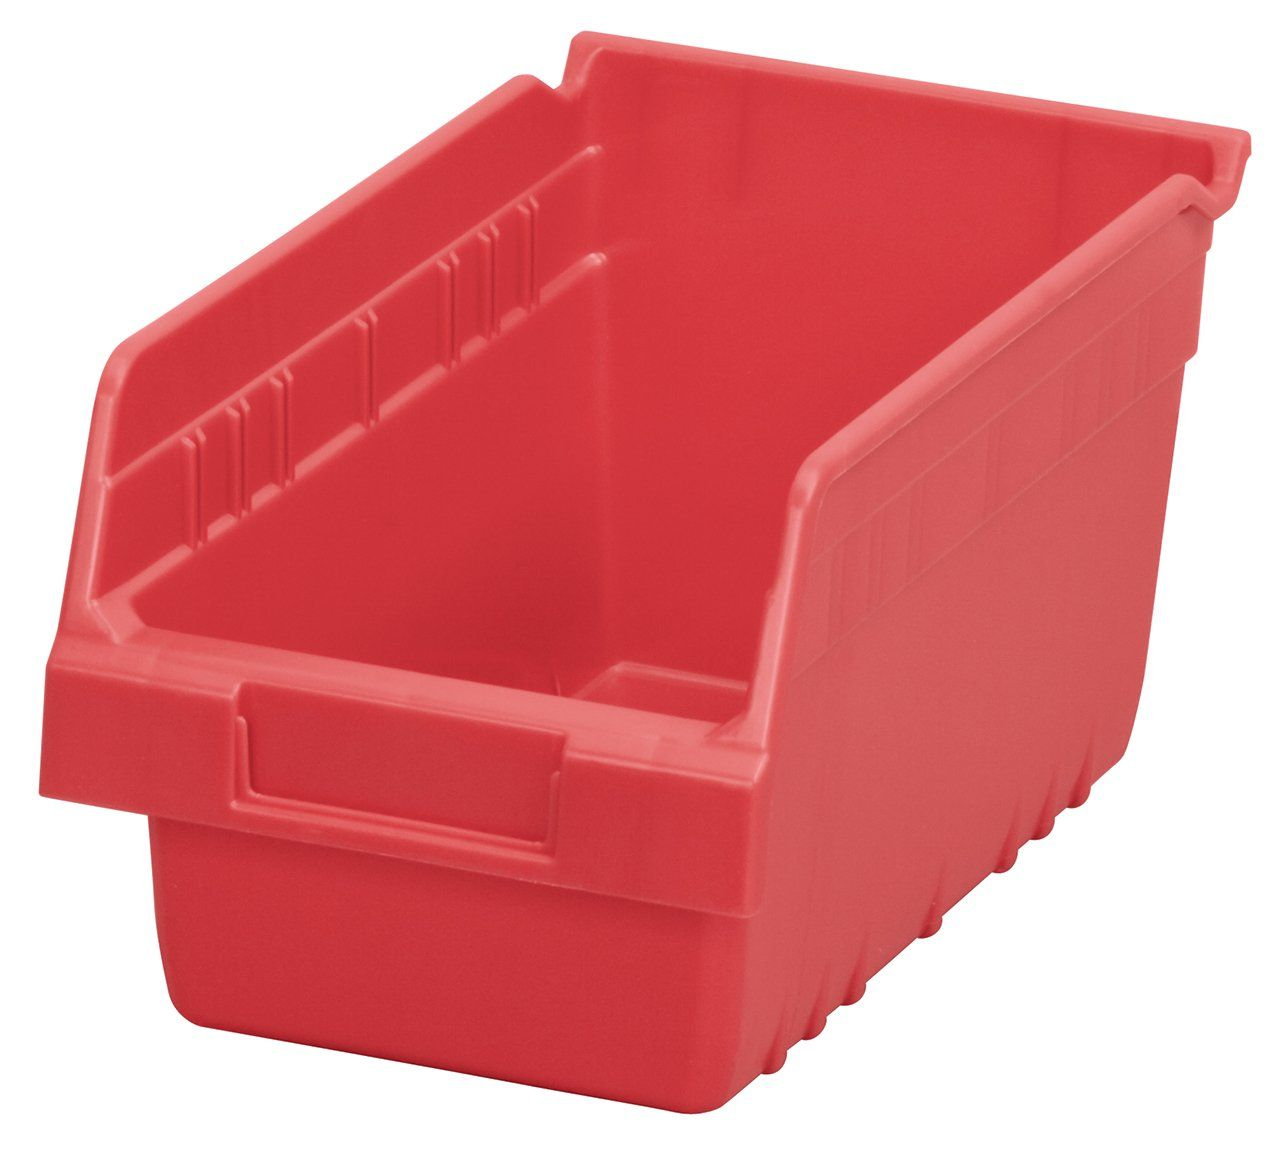 Akro Mils 30090 Shelfmax Plastic Nesting Shelf Bin Box 12 Inch Length X 6 Inch Width X 6 Inch Height Case Of 10 Red Clic Shelf Bins Bins Vertical Storage